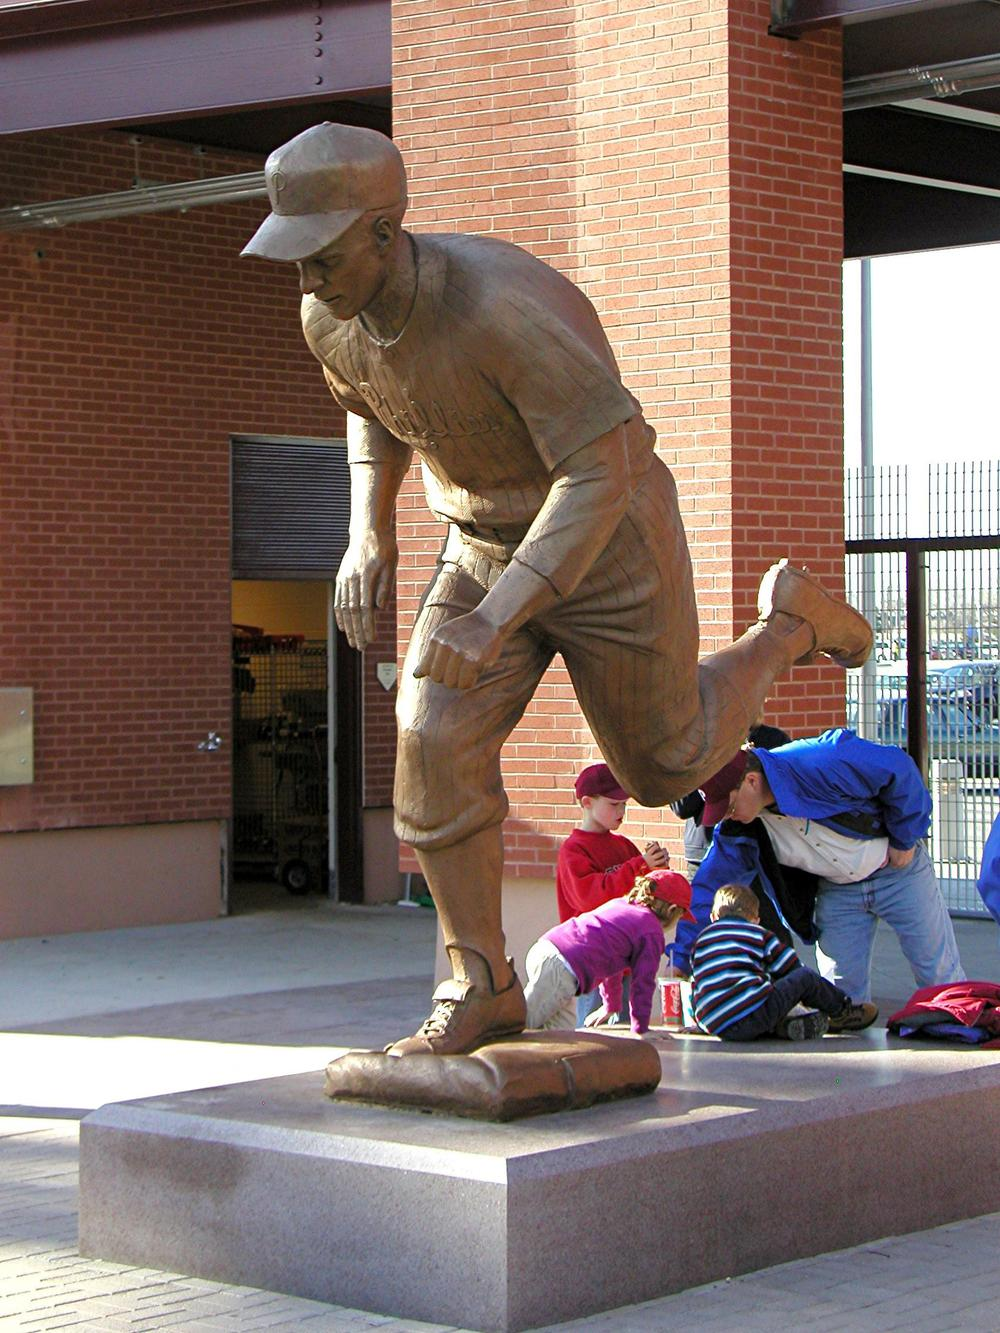 Richie Ashburn, portrait statue